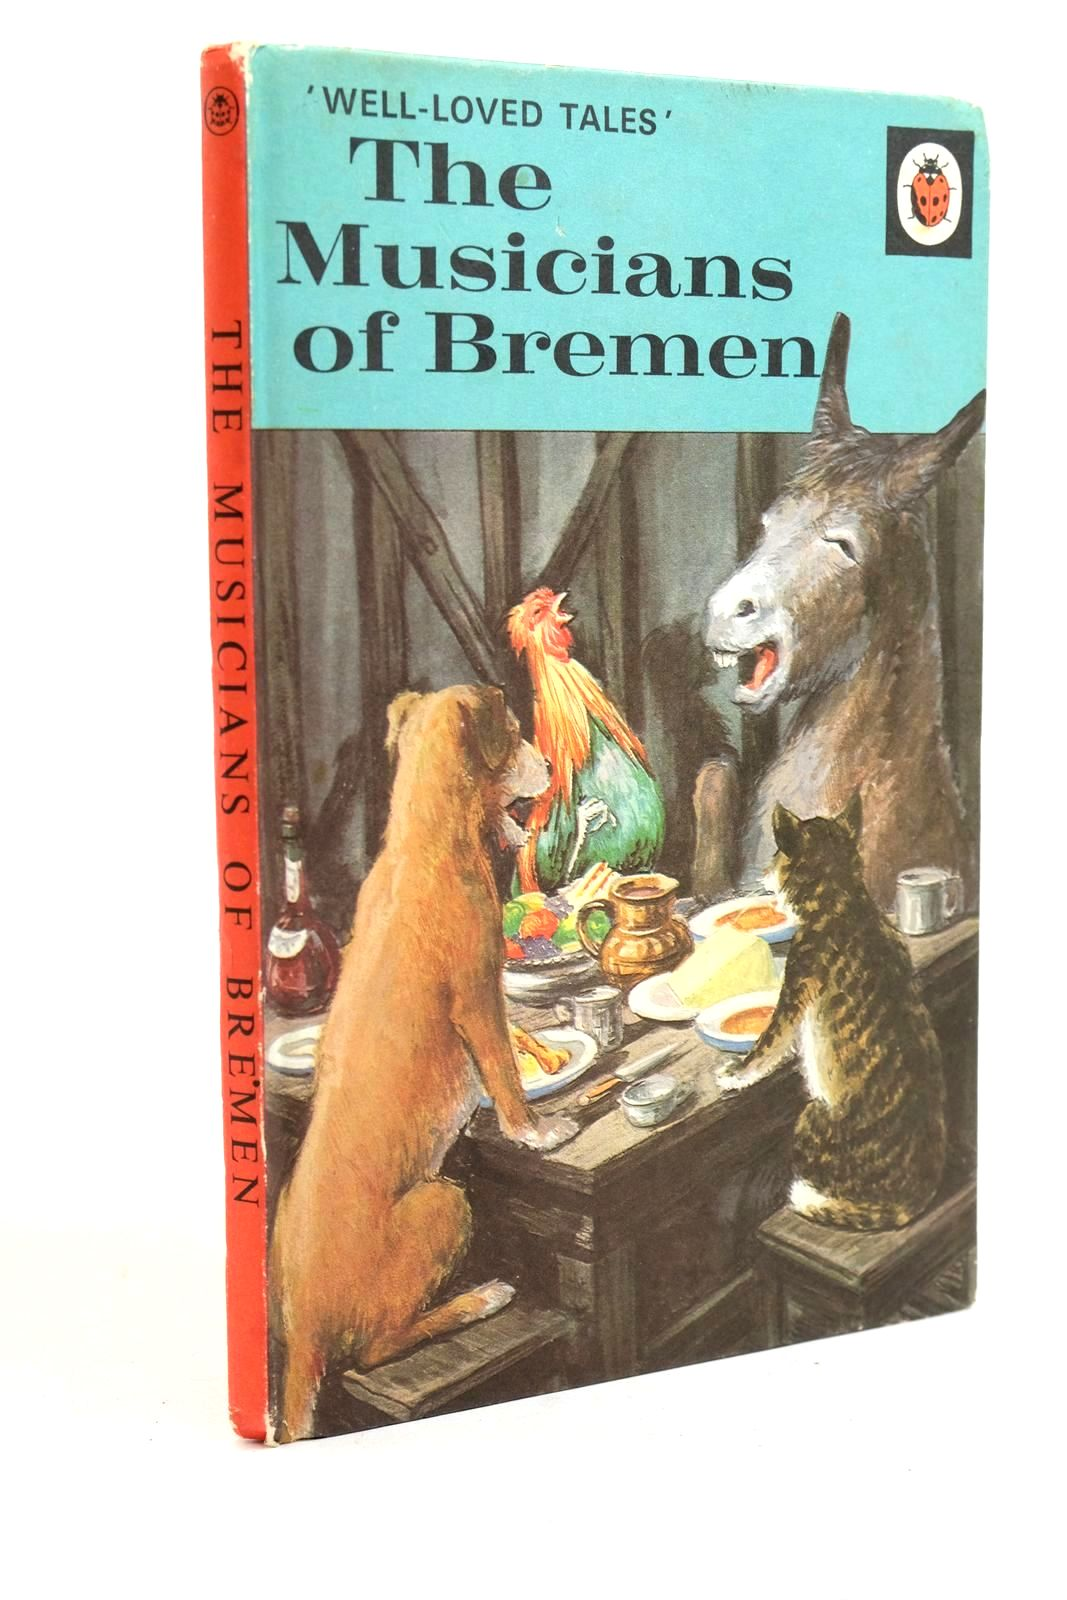 Photo of THE MUSICIANS OF BREMEN written by Southgate, Vera illustrated by Lumley, Robert Berry, John published by Ladybird Books (STOCK CODE: 1321344)  for sale by Stella & Rose's Books